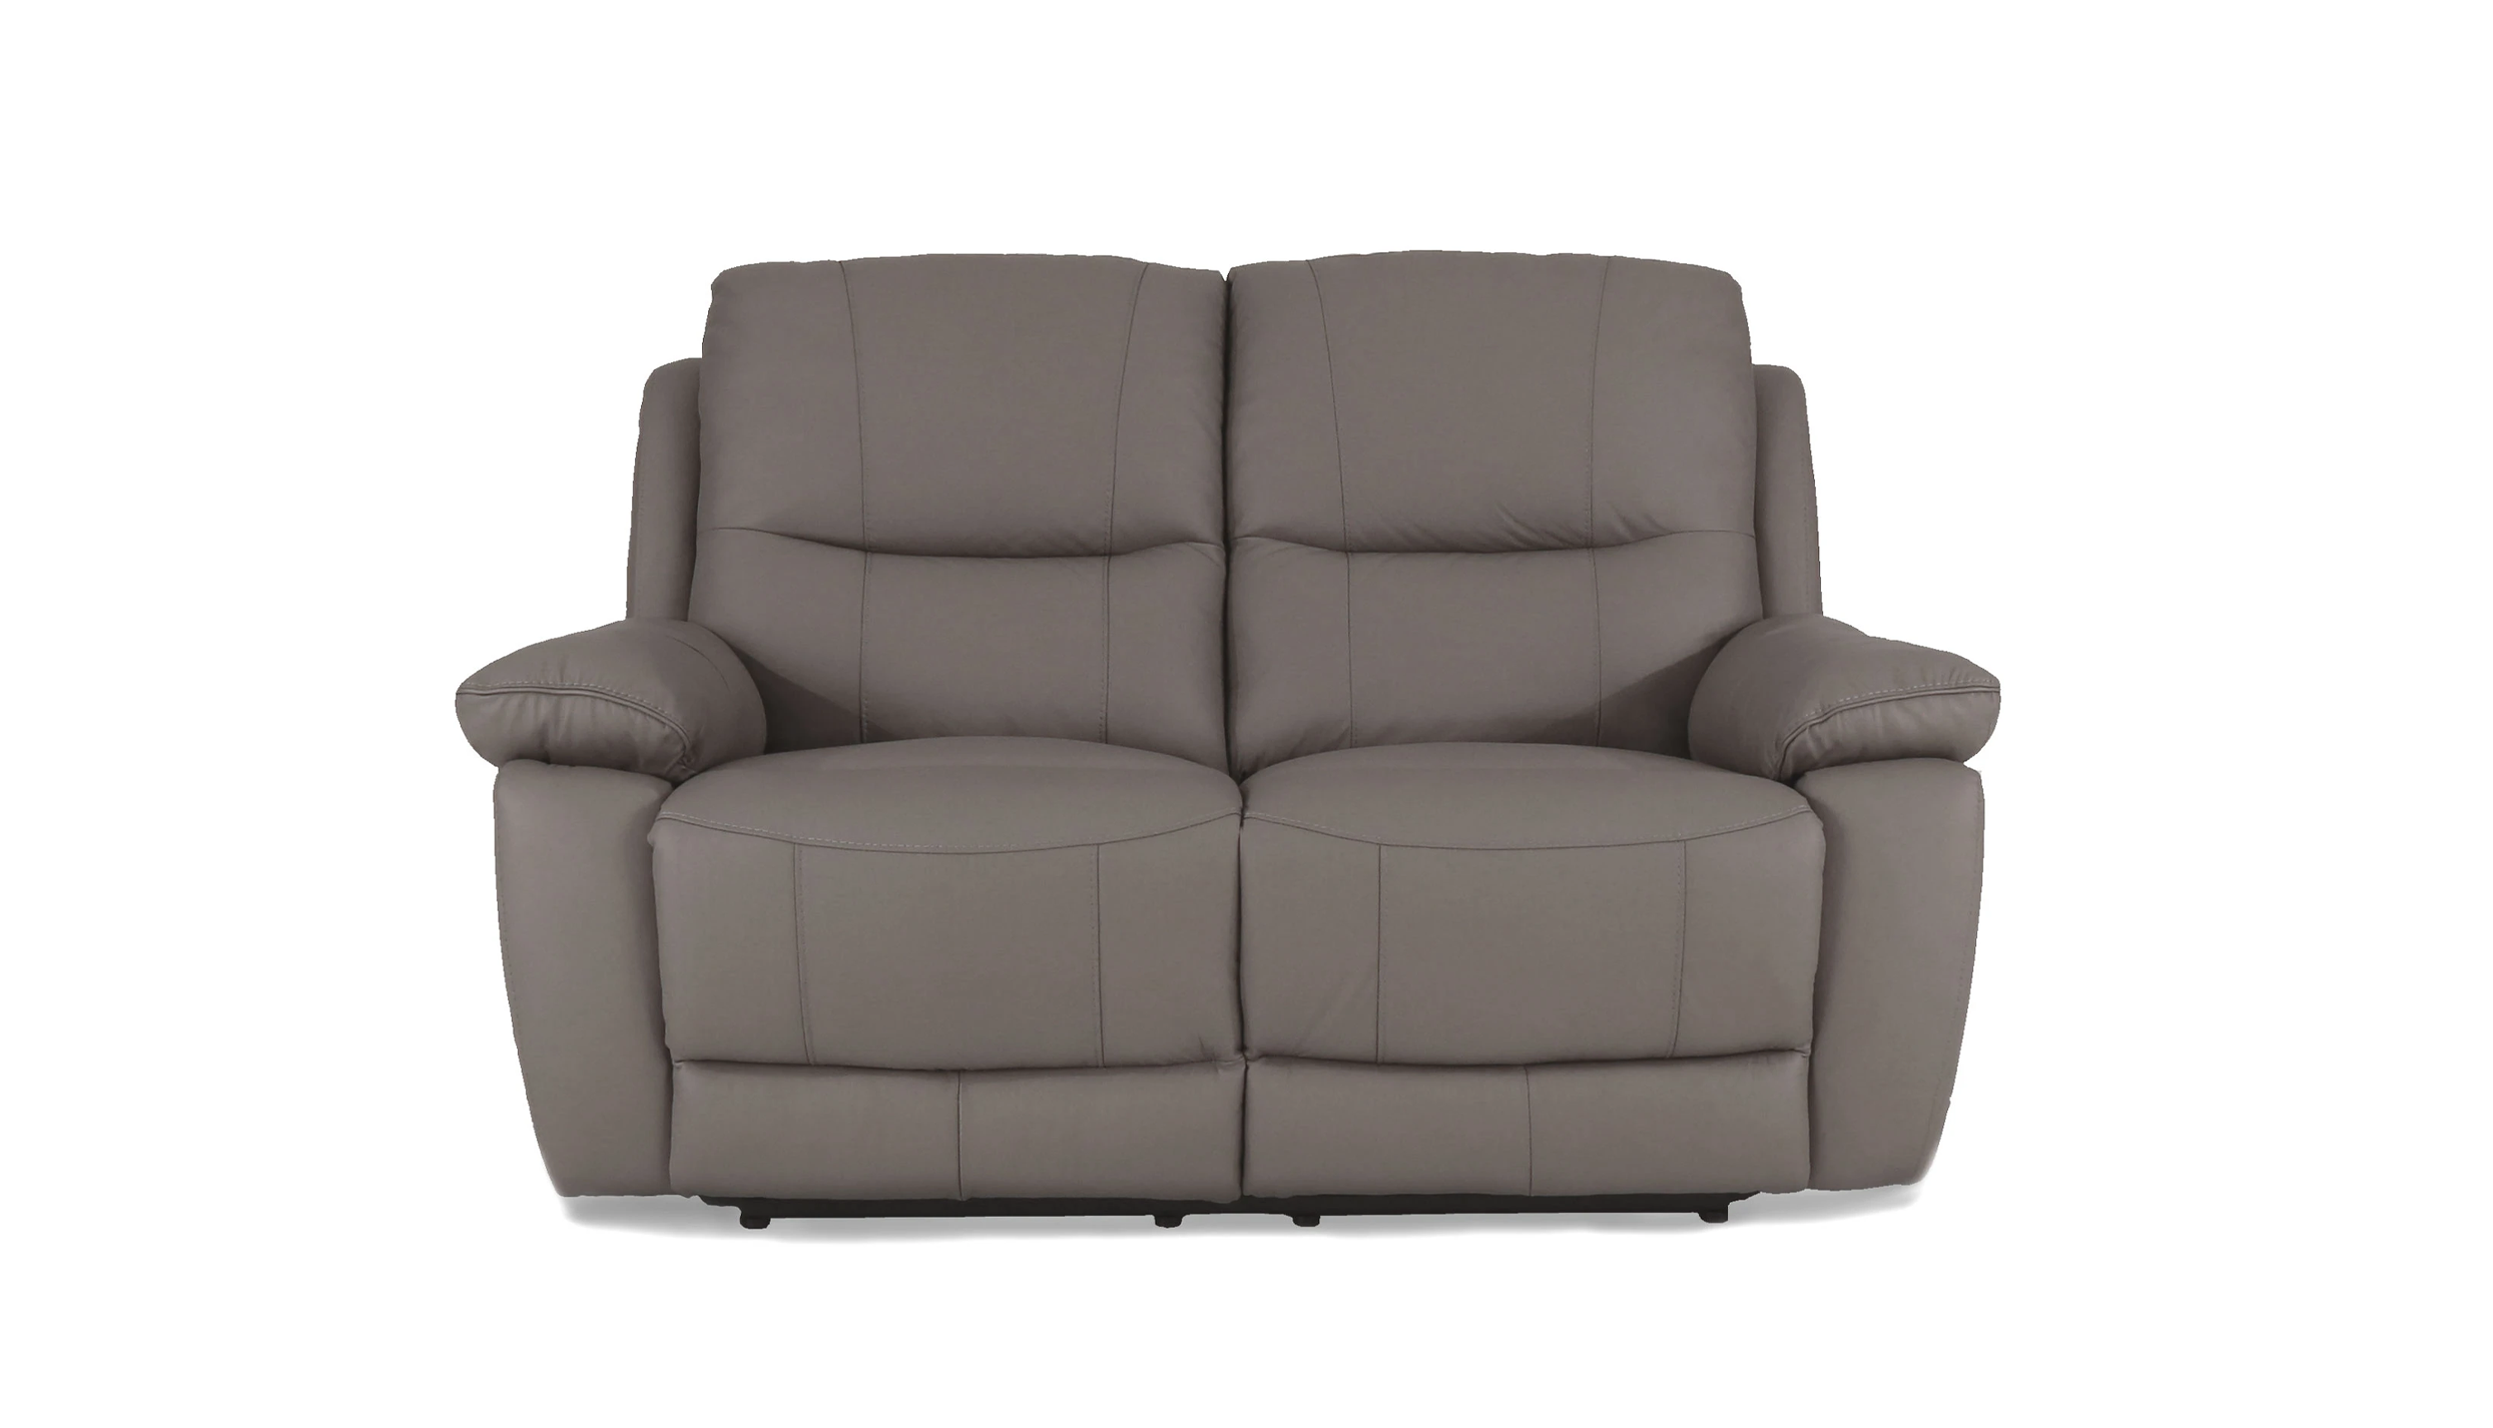 Tivoli 2 Seater Sofa